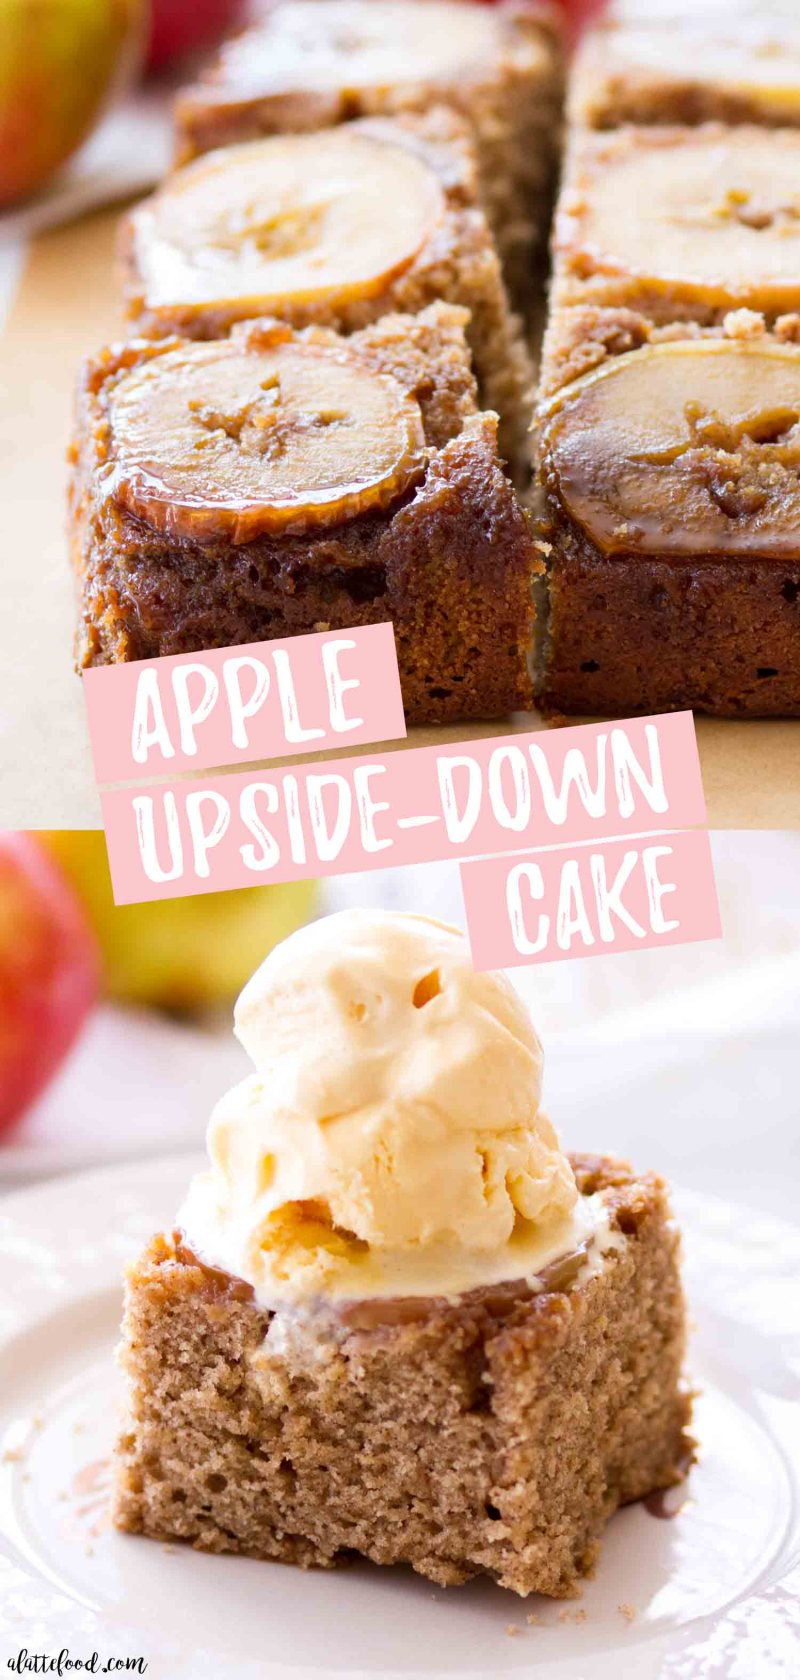 apple upside-down cake photo collage with text